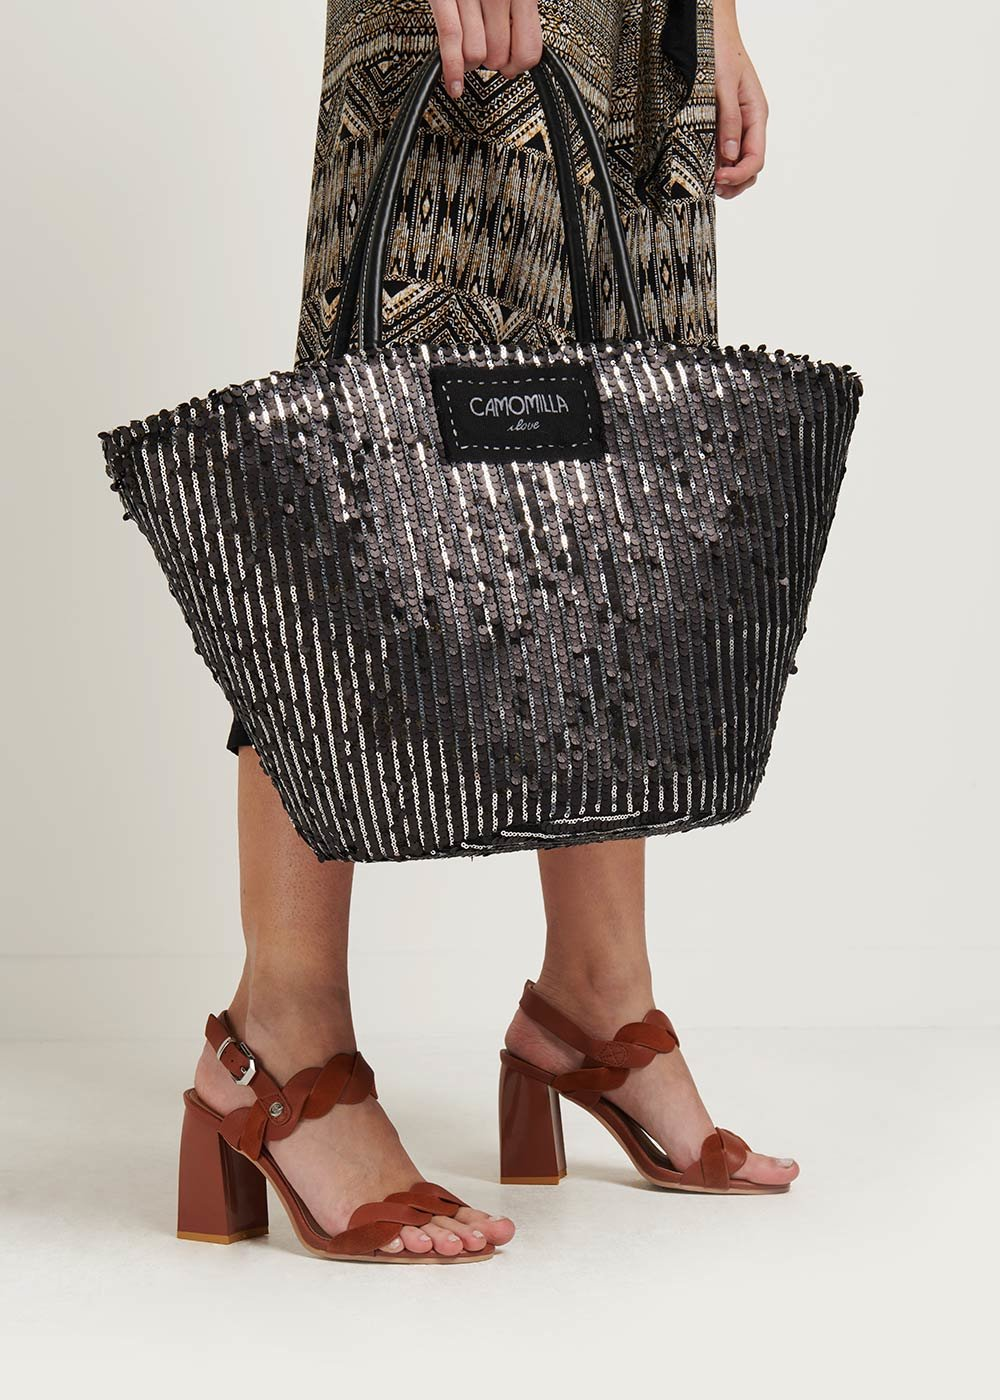 Bail straw bag with sequins - Black - Woman